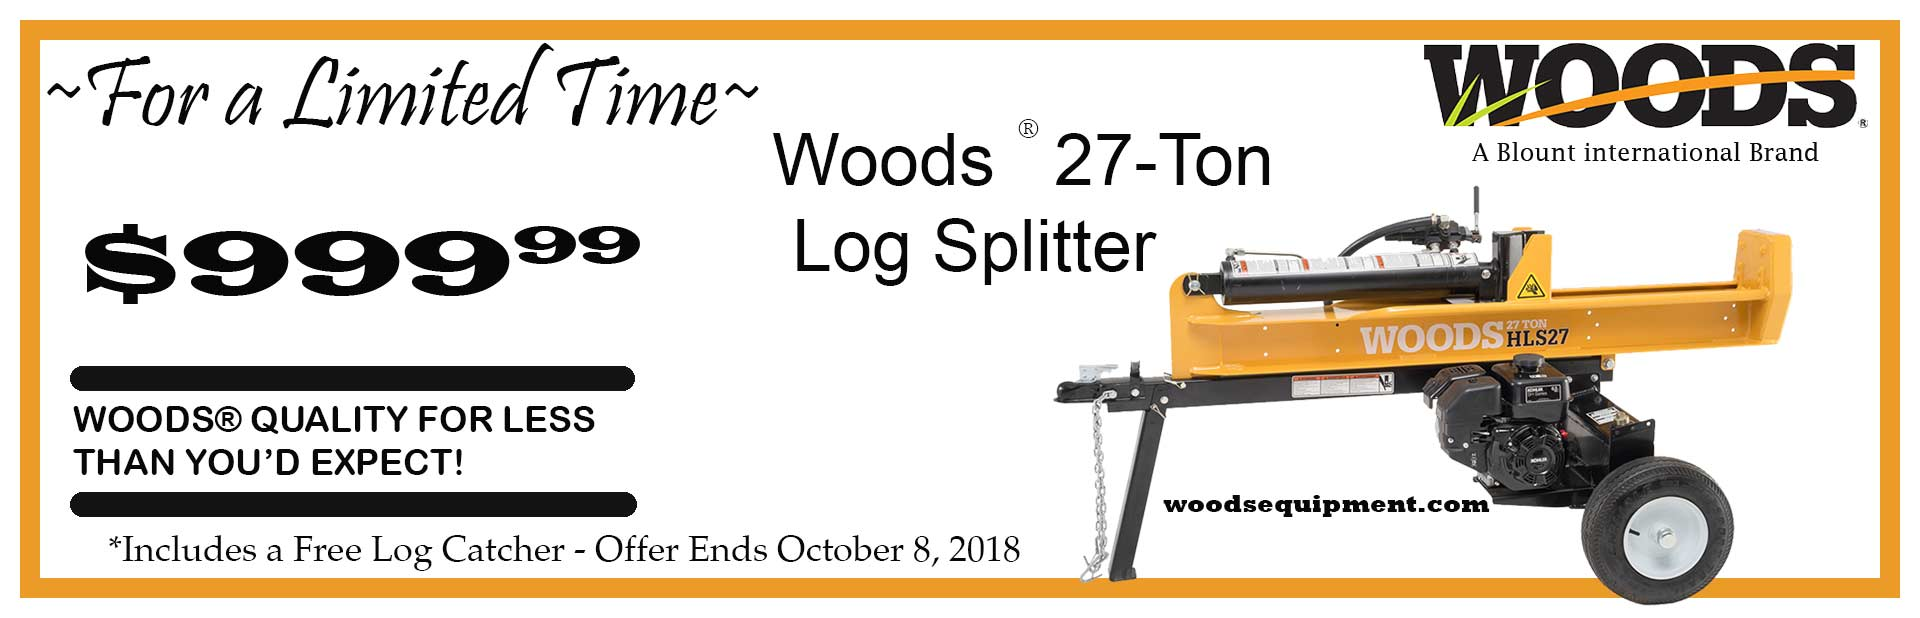 Woods HLS27 Log Splitter